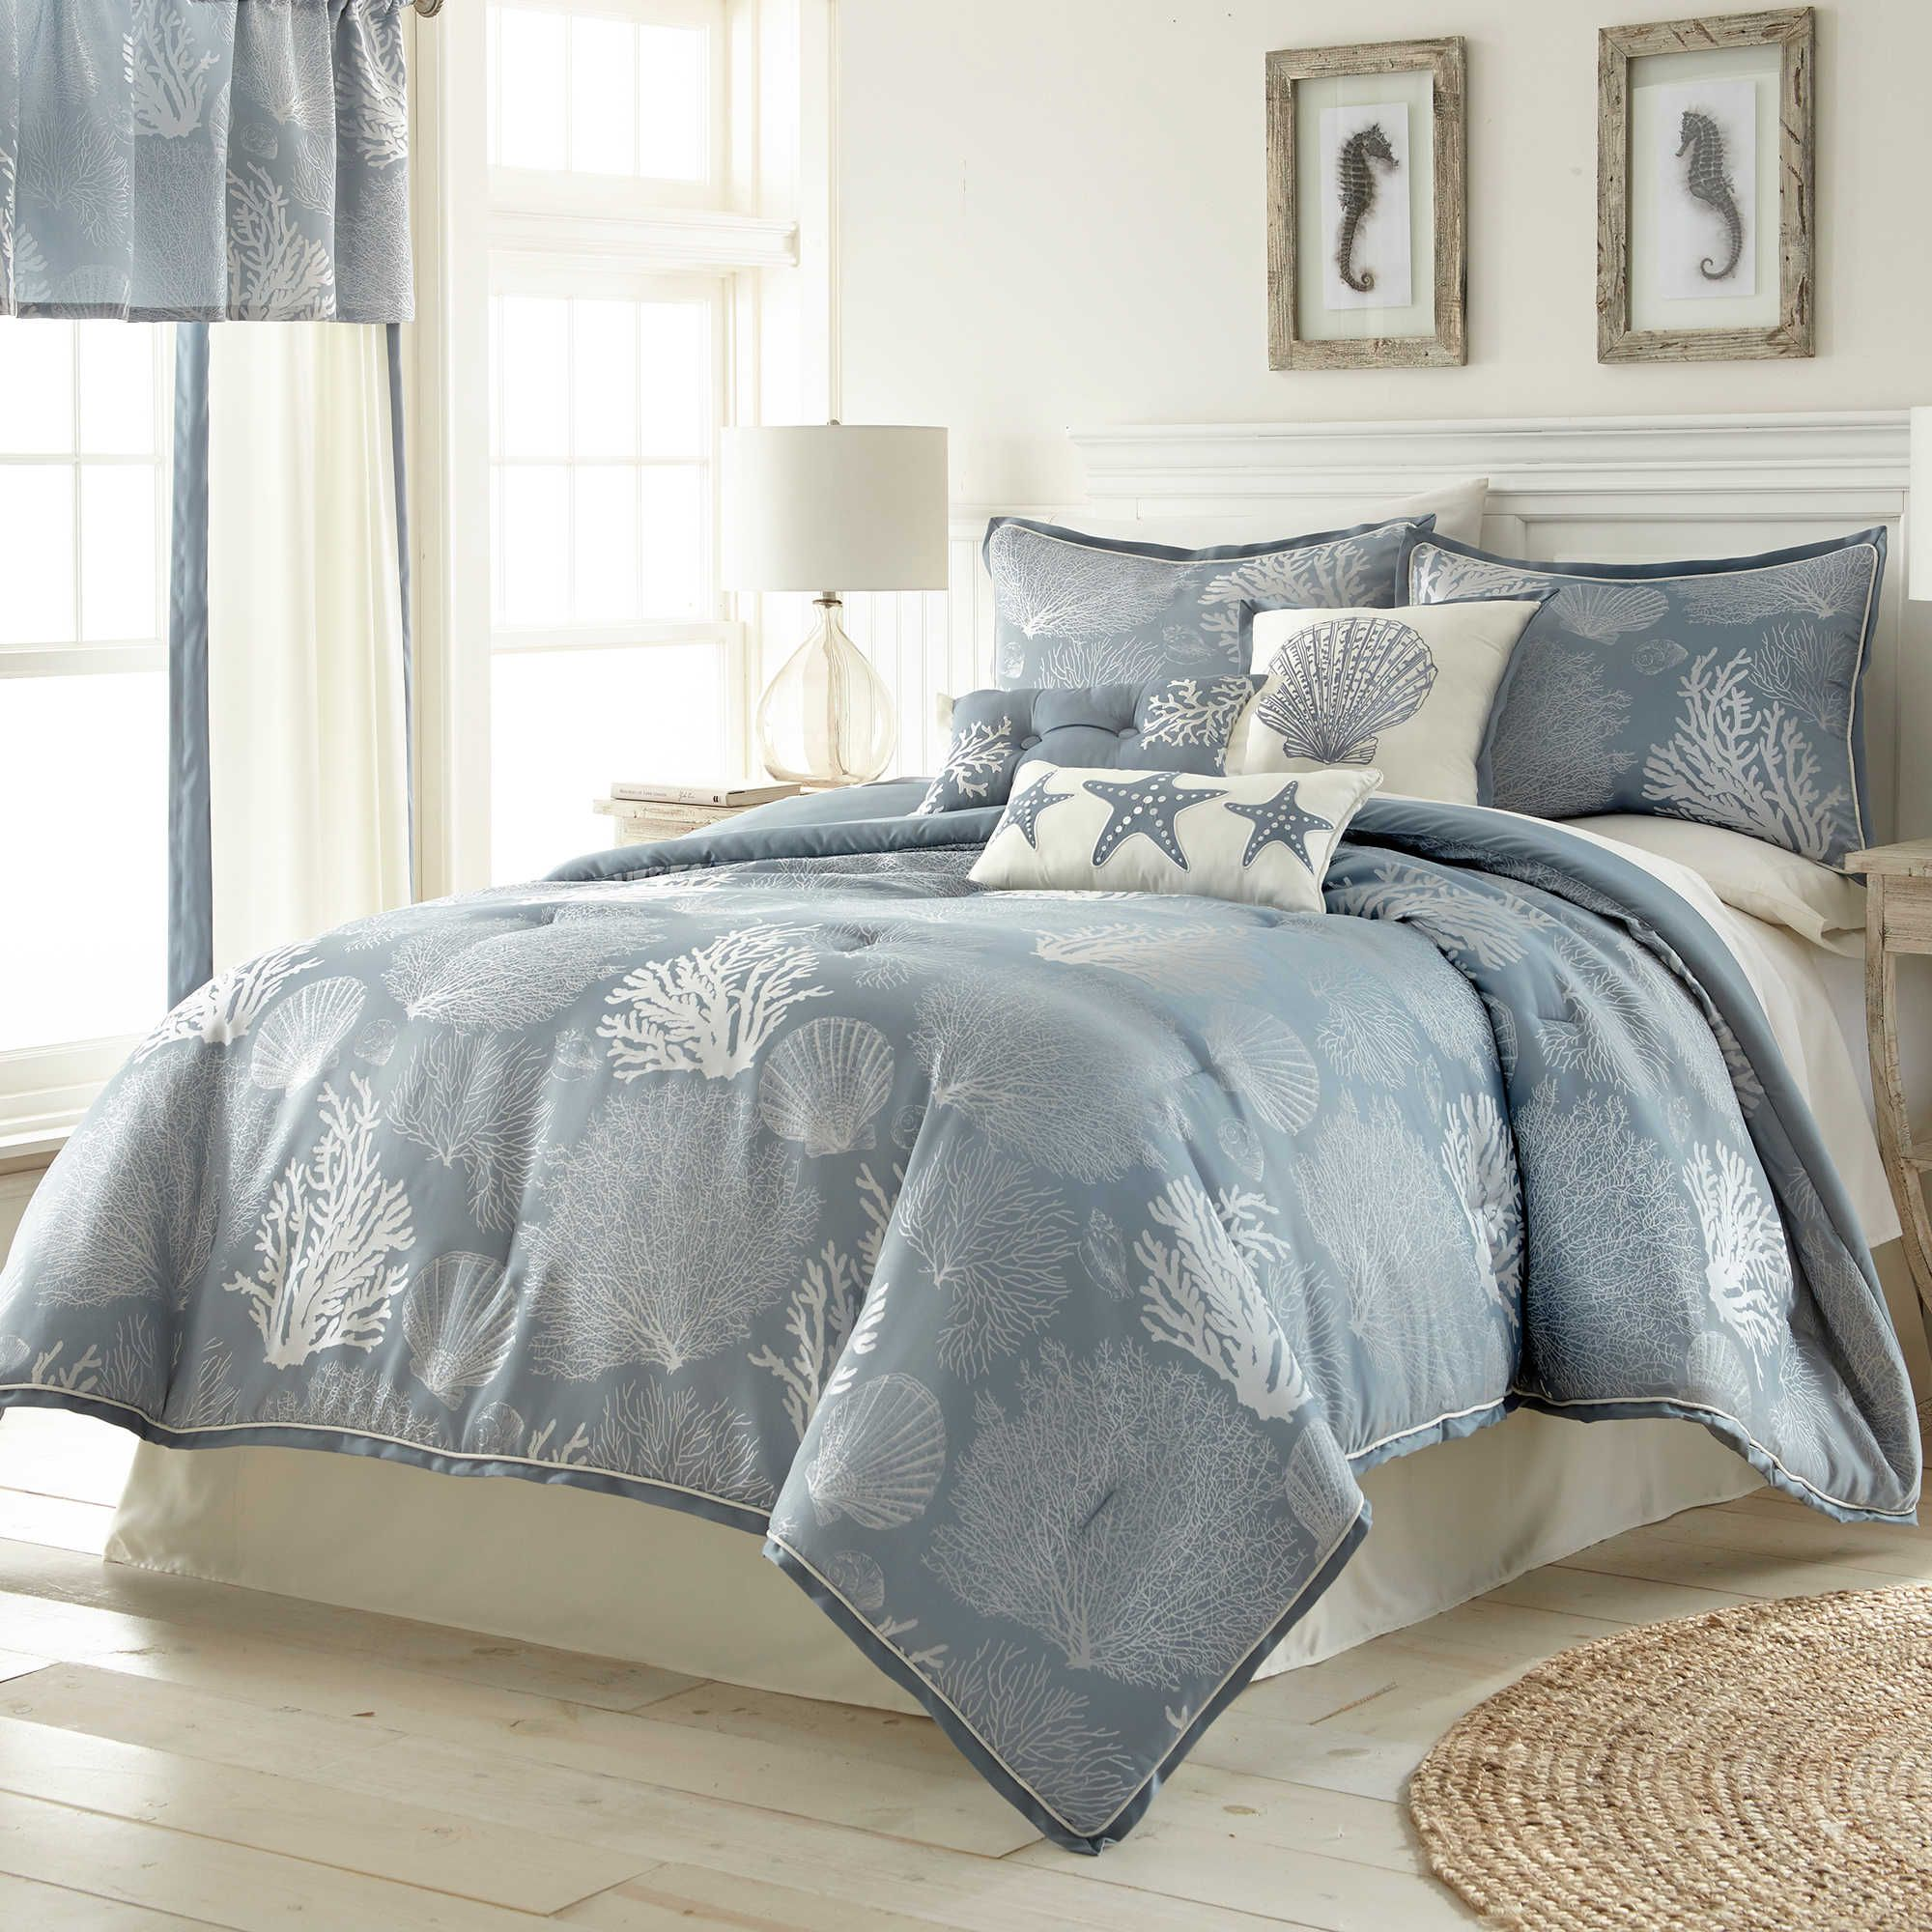 Ocean Colors Bedroom Siesta Key Comforter Set In Blue Bedroom Pinterest Blue